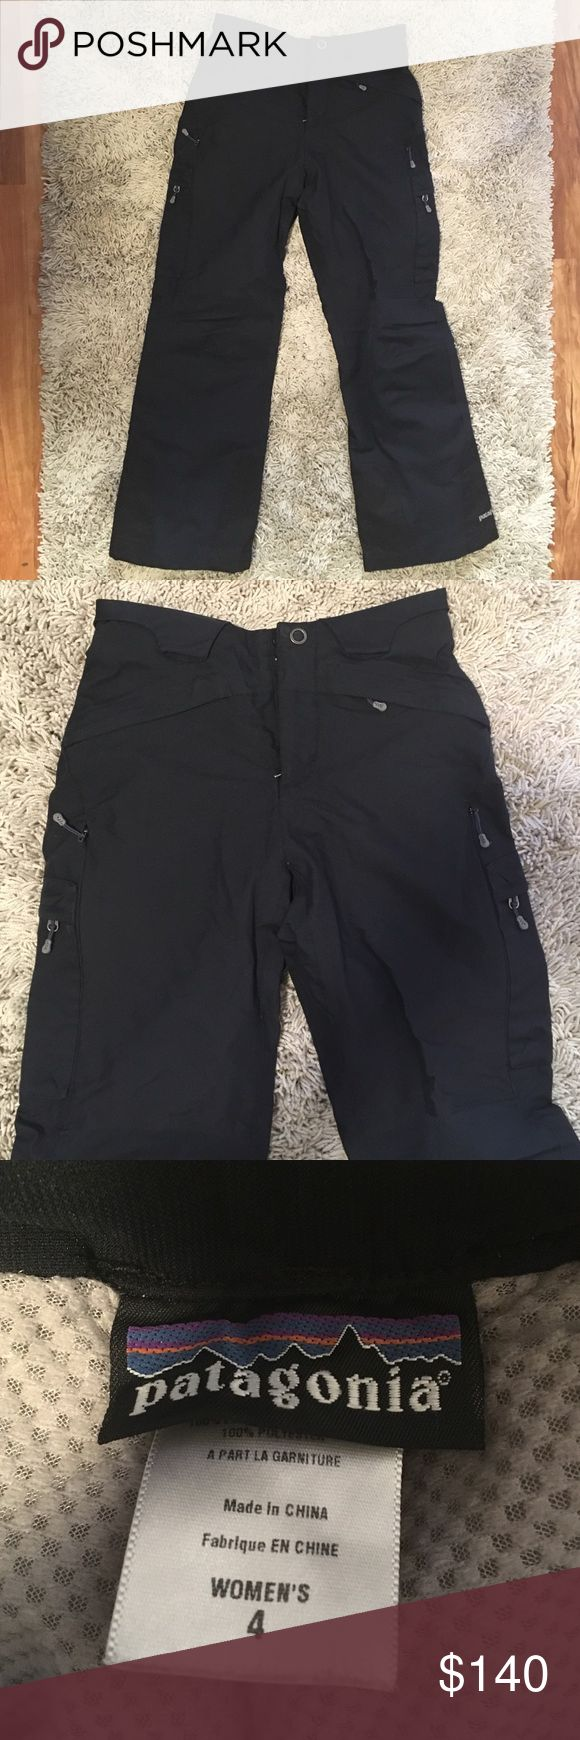 Patagonia ski or snowboard pants. Like new! LIKE NEW! Black Patagonia snow pants, great for snowboarding and skiing. Pockets on both legs, with adjustable ankles. Patagonia Pants Straight Leg